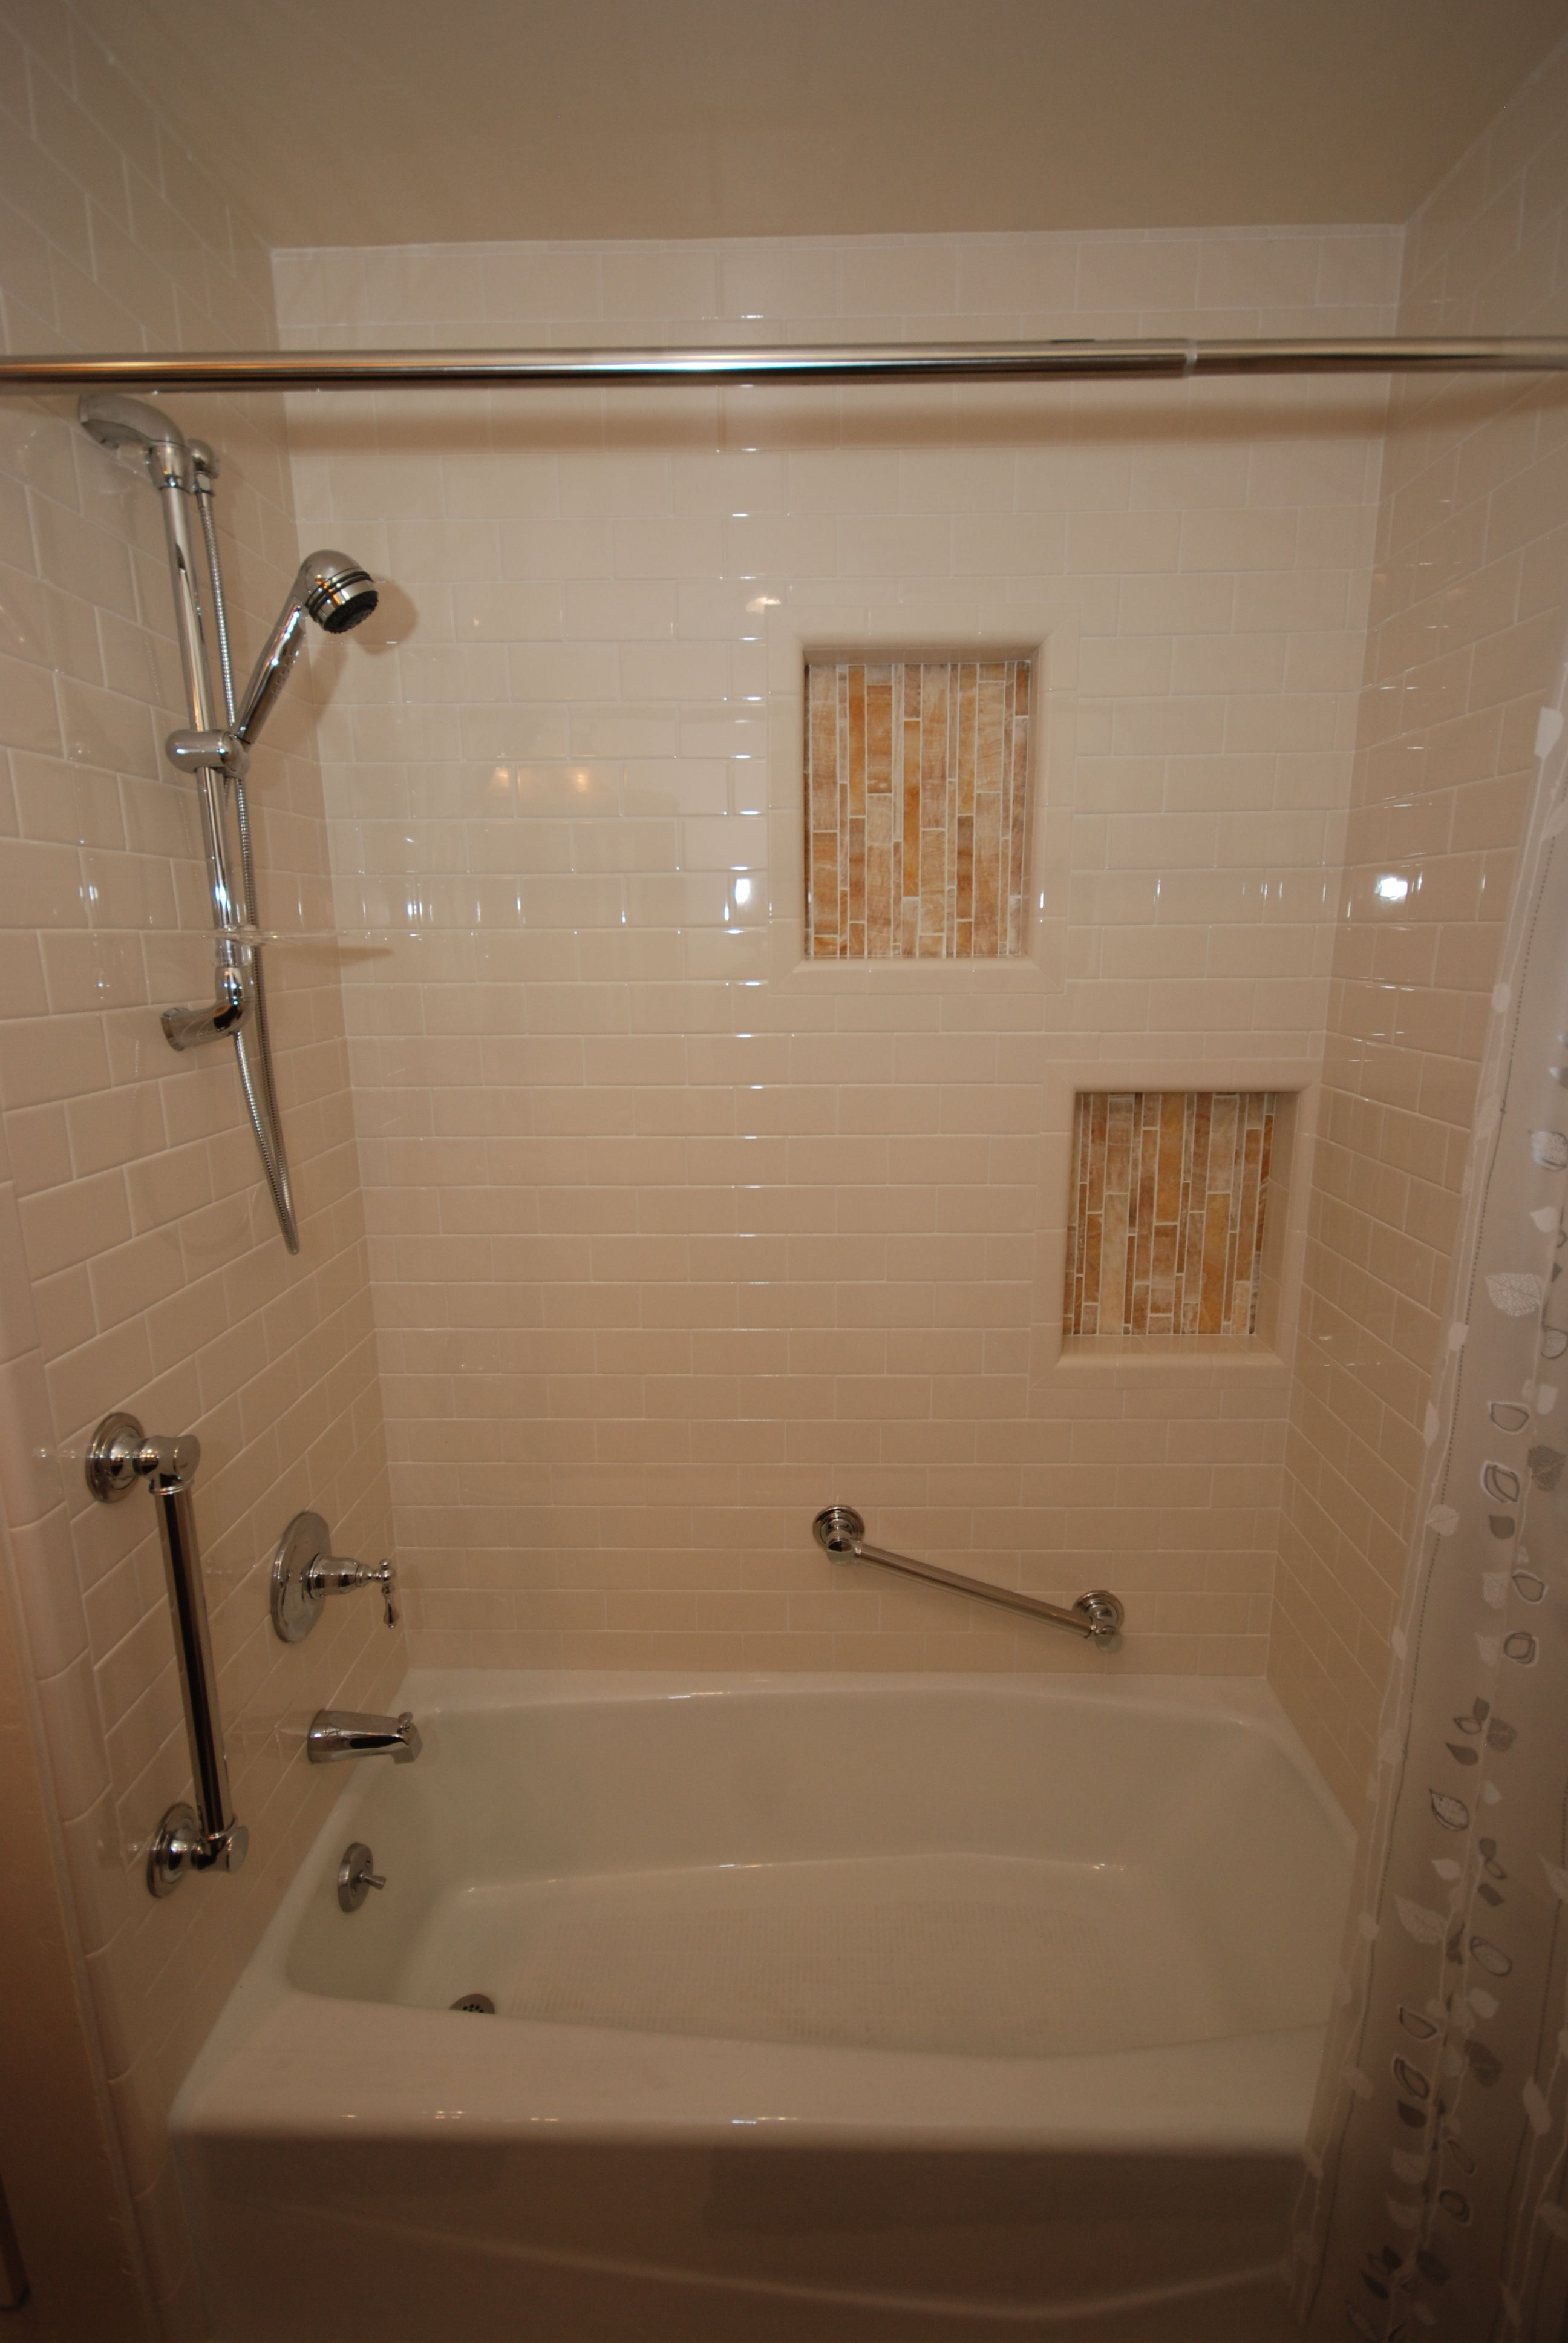 Onyx bathroom tile - Biscuit Subway Tile With Onyx Niches